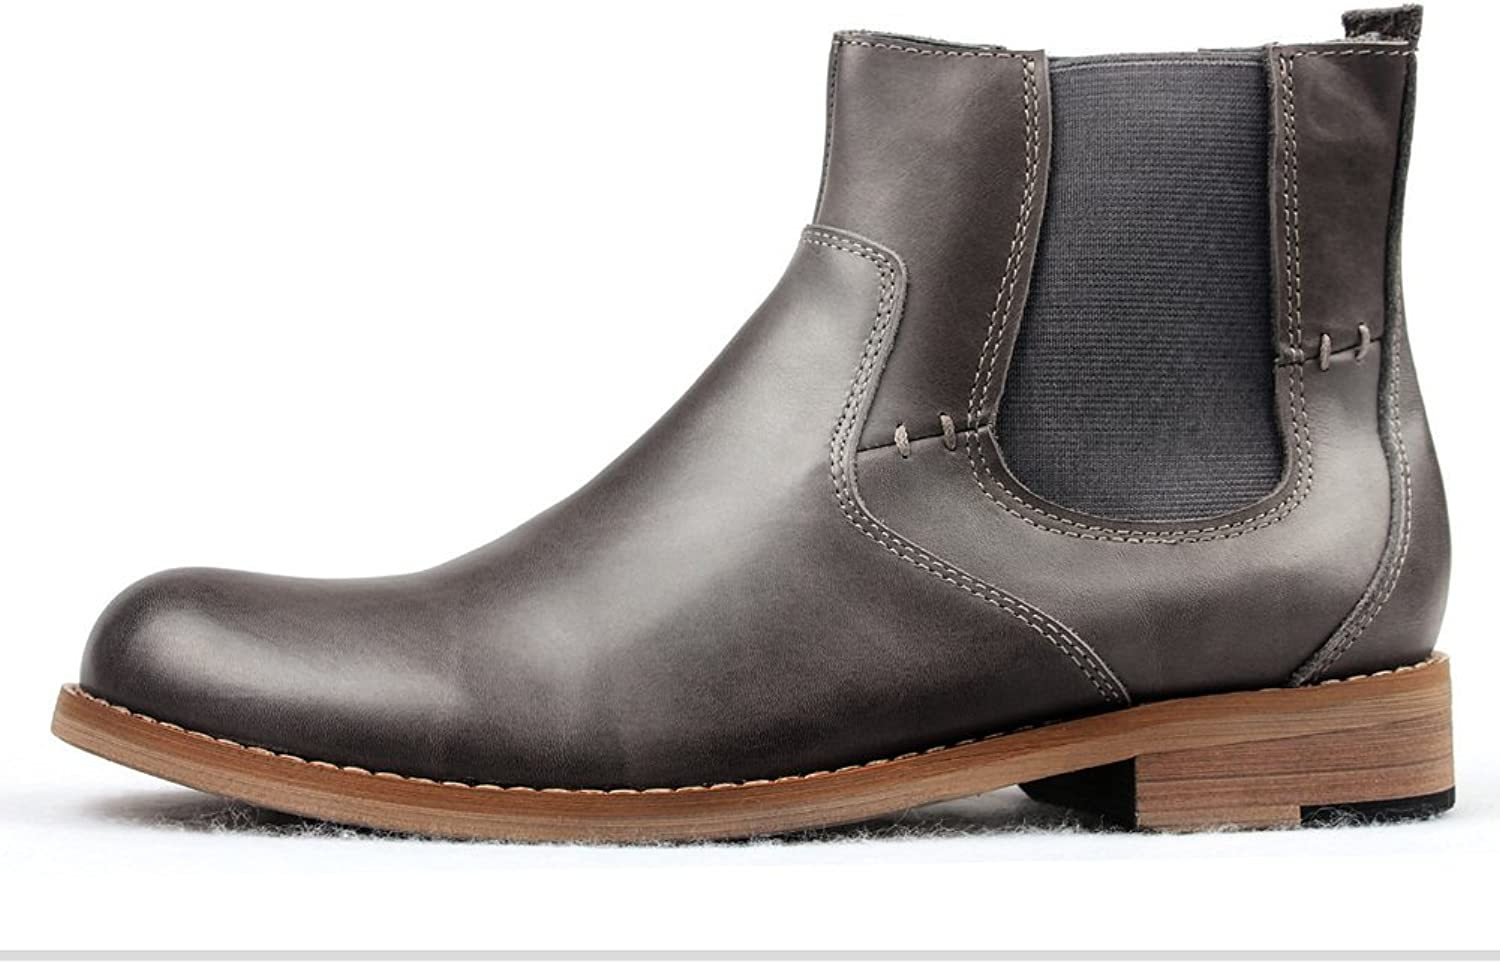 Fall Winter Men's Boots Old Boot Leather Knight Boots